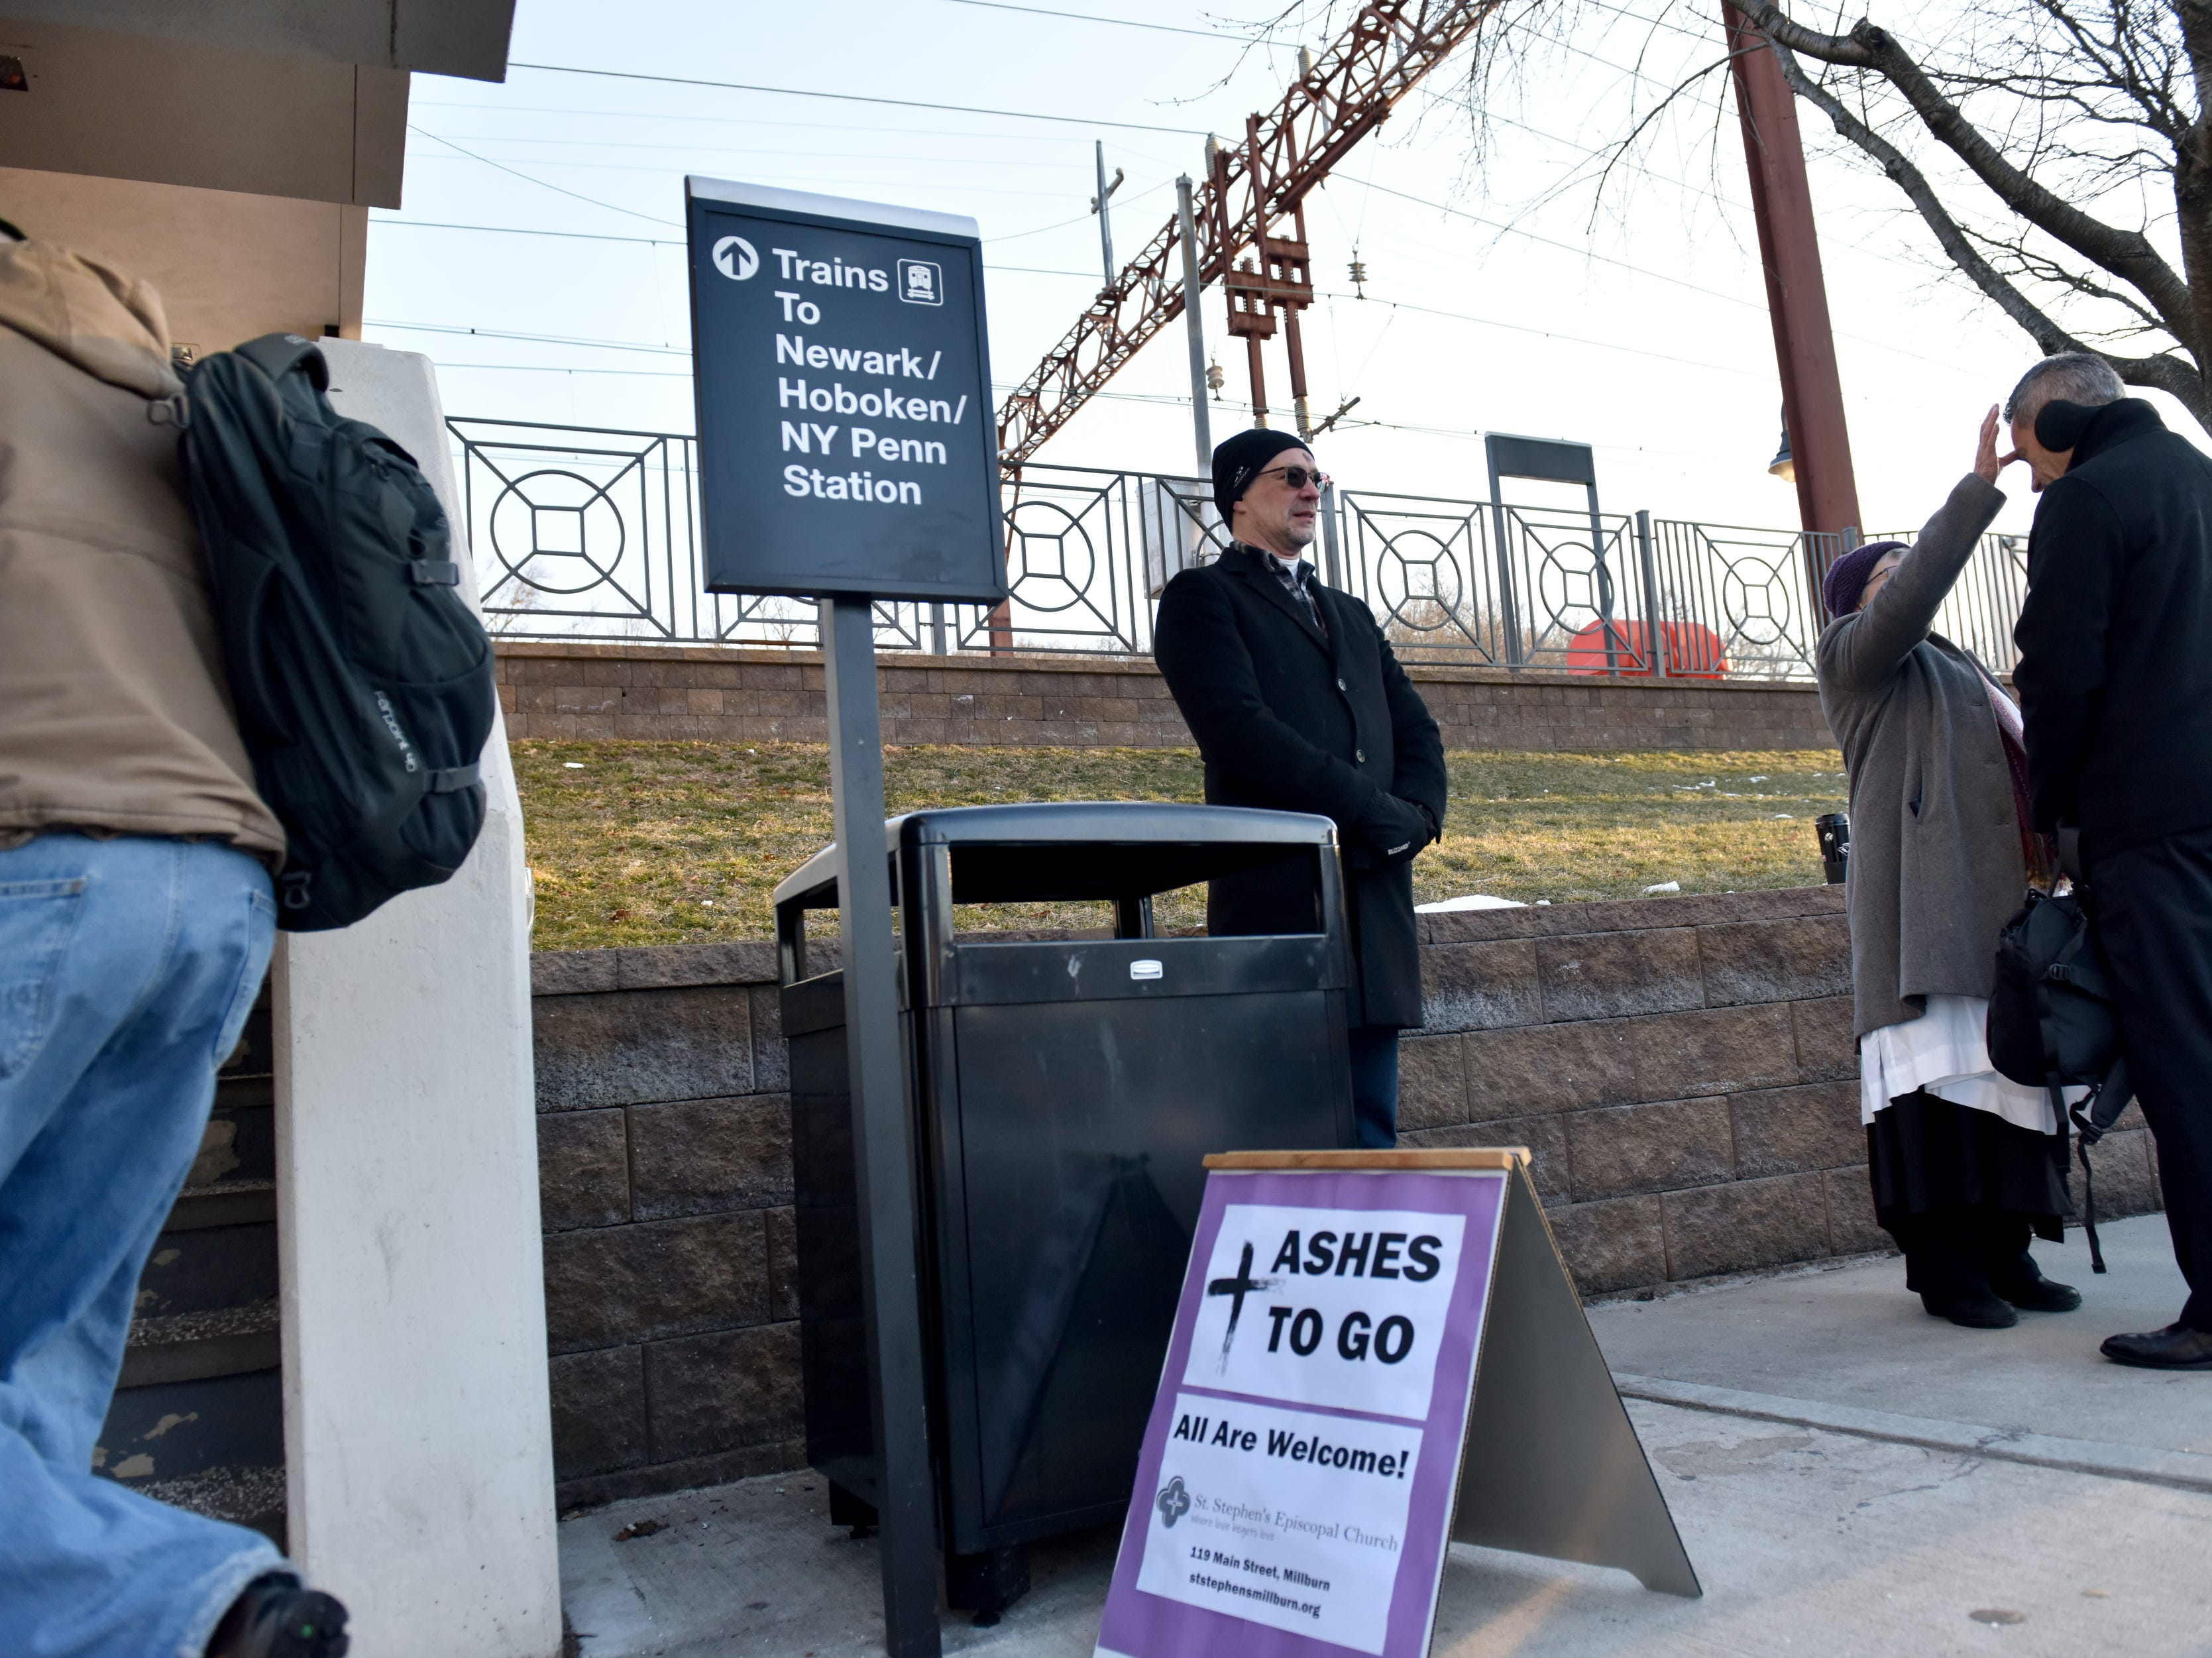 Rev. Paula J. Toland, of St. Stephen's Episcopal Church, provides Ashes at the Millburn Train Station for commuters in Millburn on Wednesday March 6, 2019.